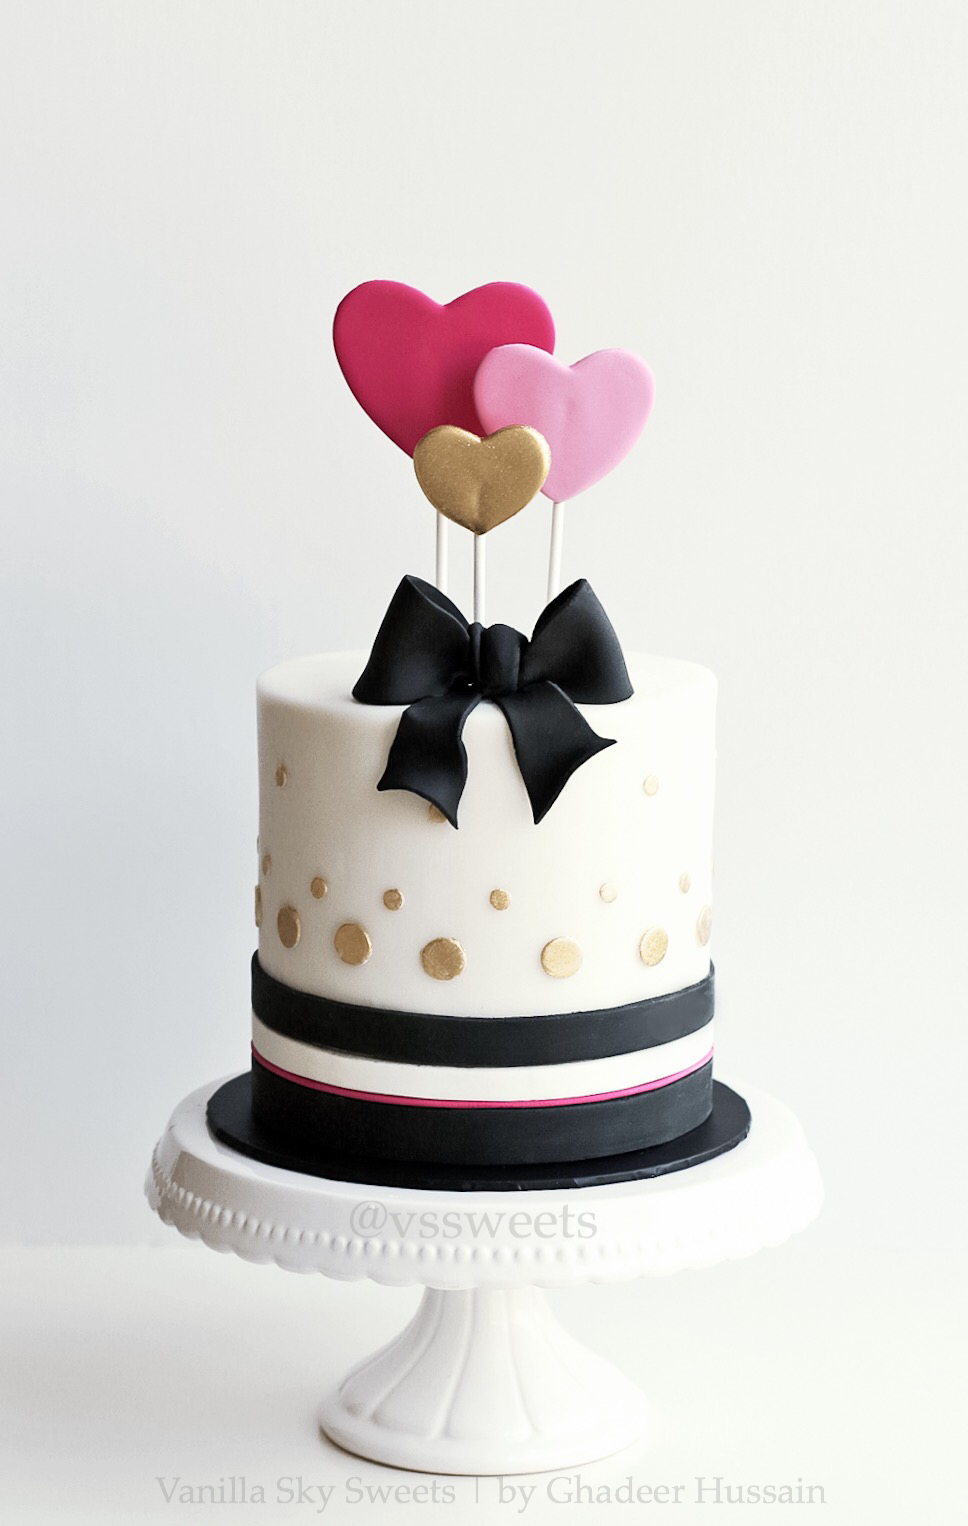 Black and white polka dot heart cake